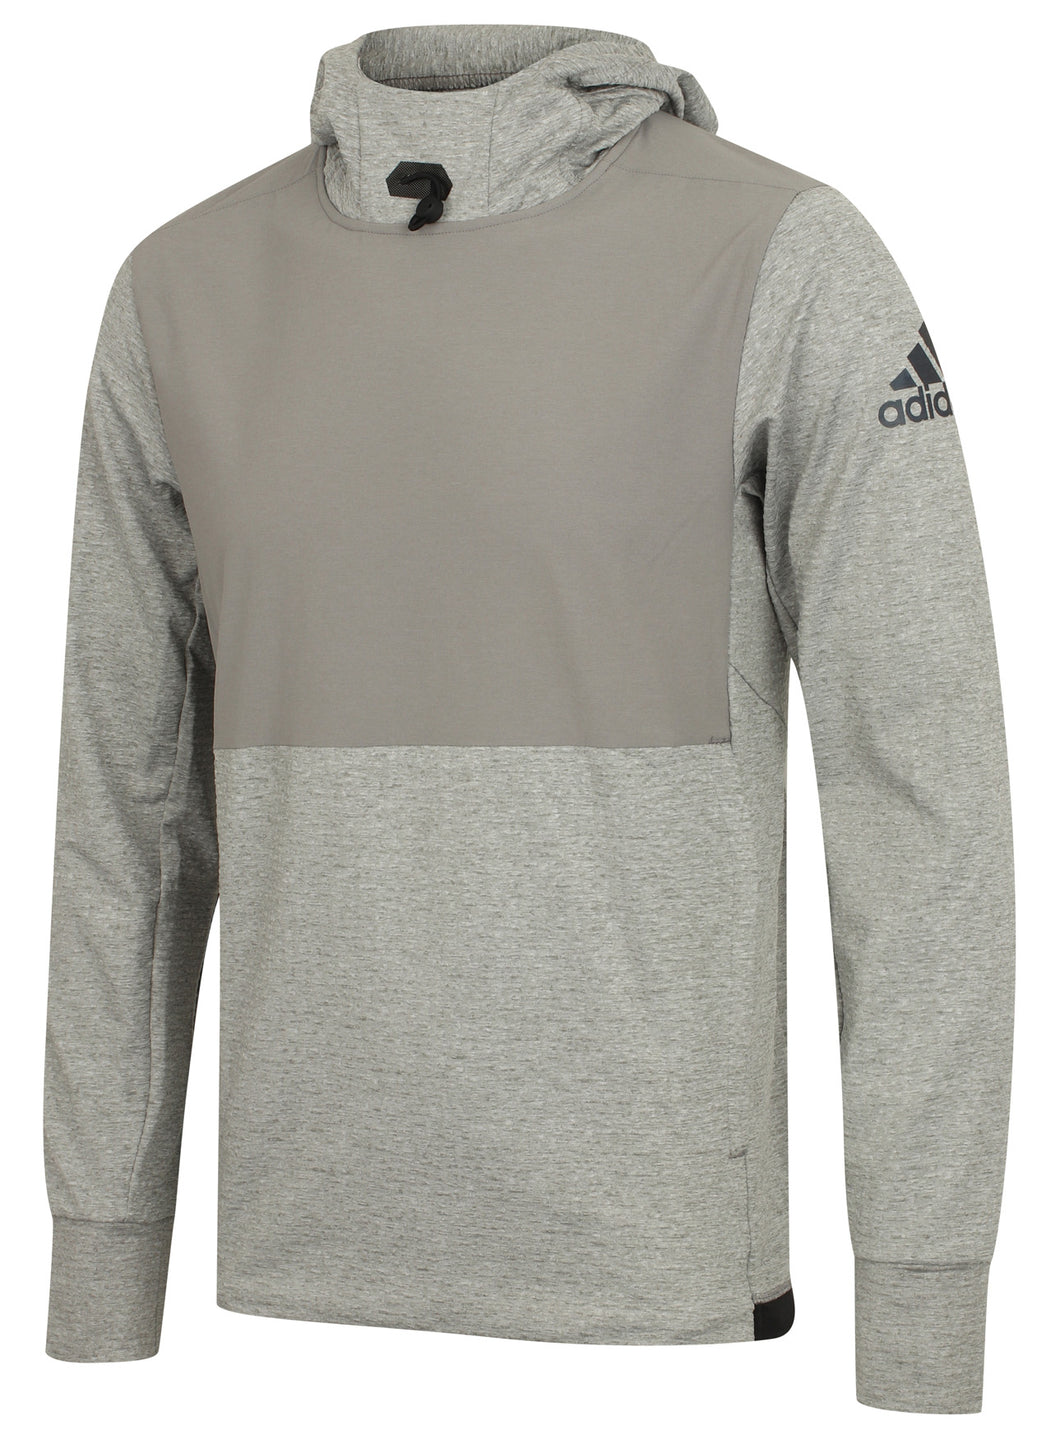 adidas Men's Workout climalite Slim Fit Pullover Hoodie Grey BR8537 Front